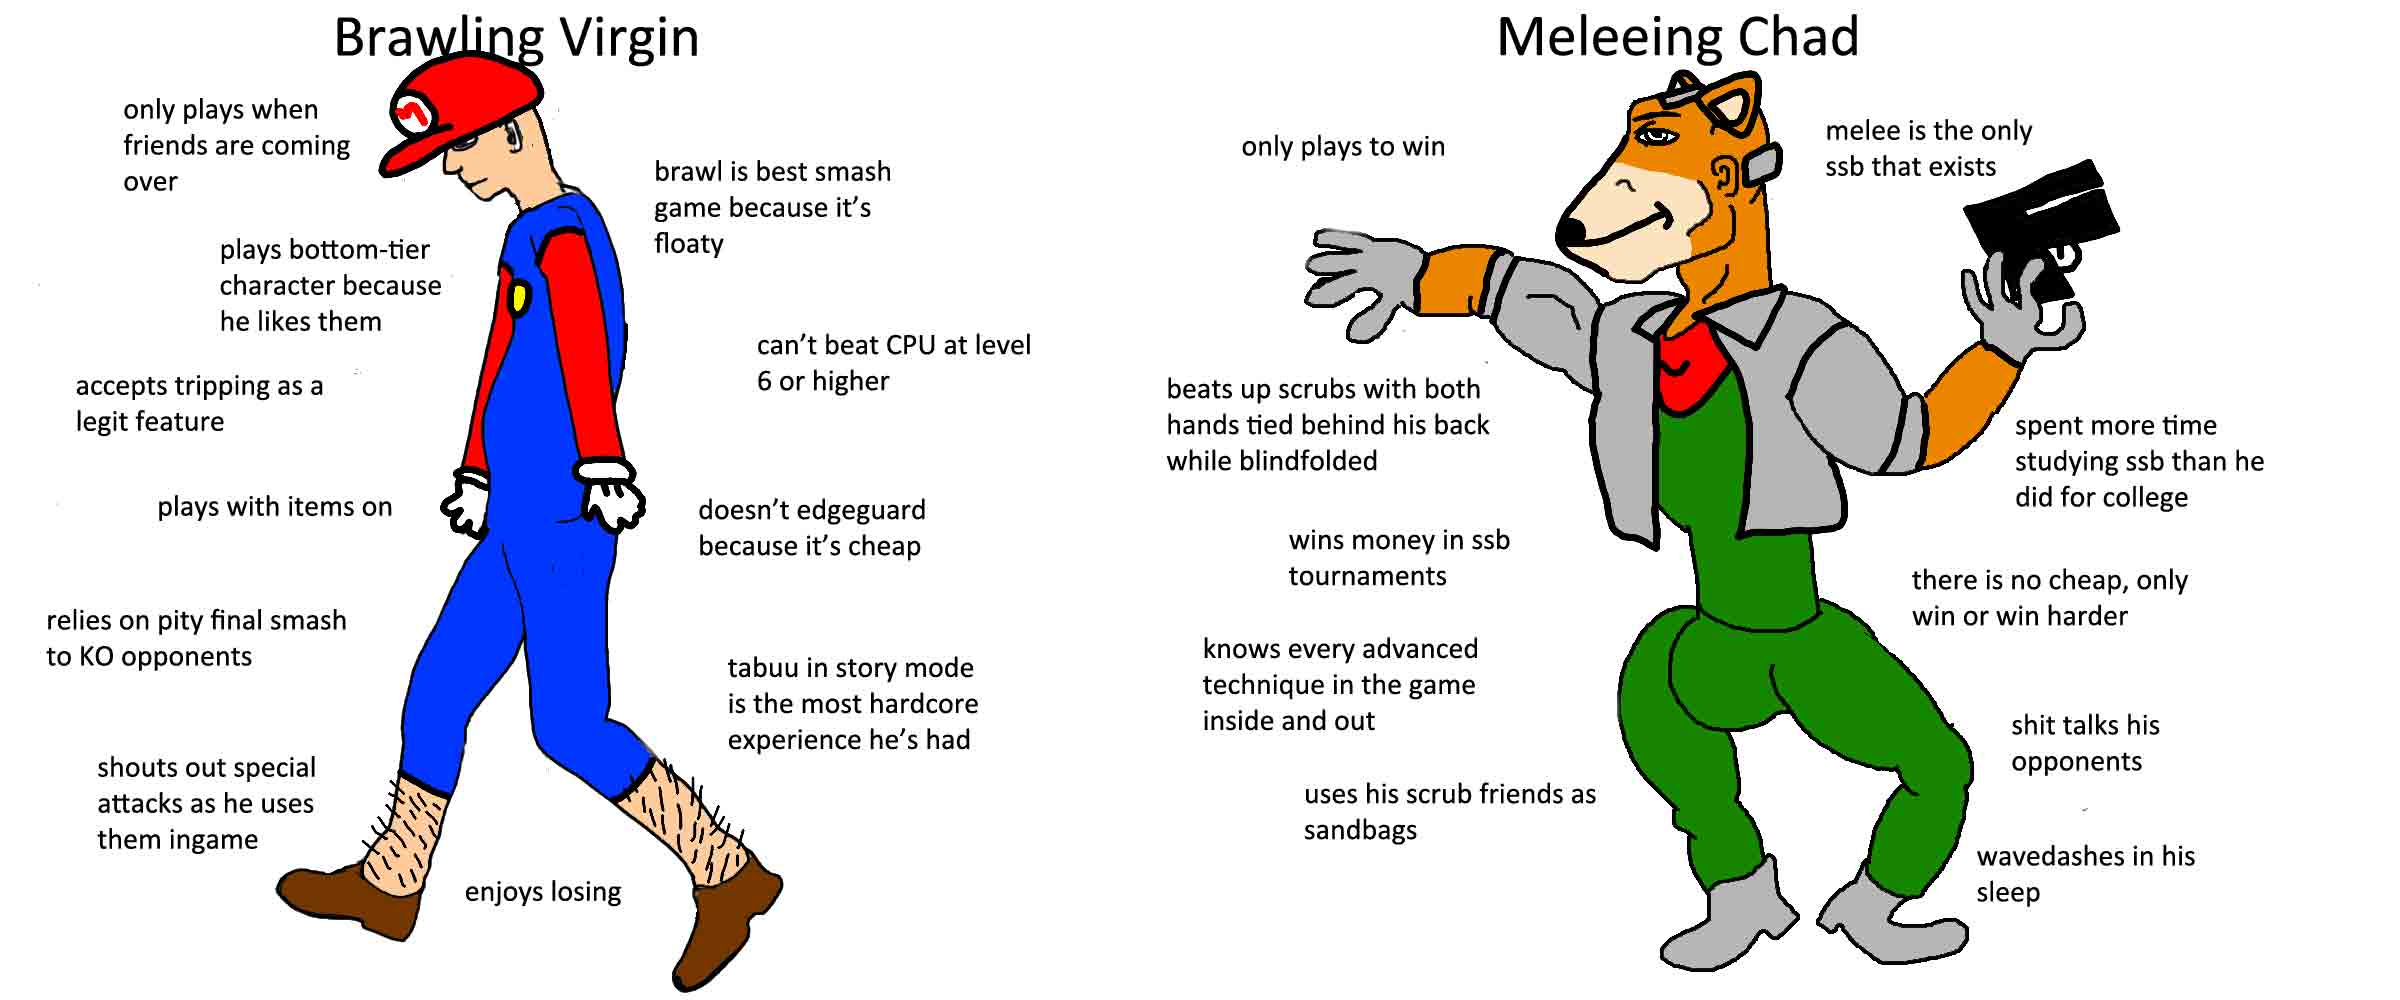 Bra Virgin Meleeing Chad Only Plays When Friends Are Coming